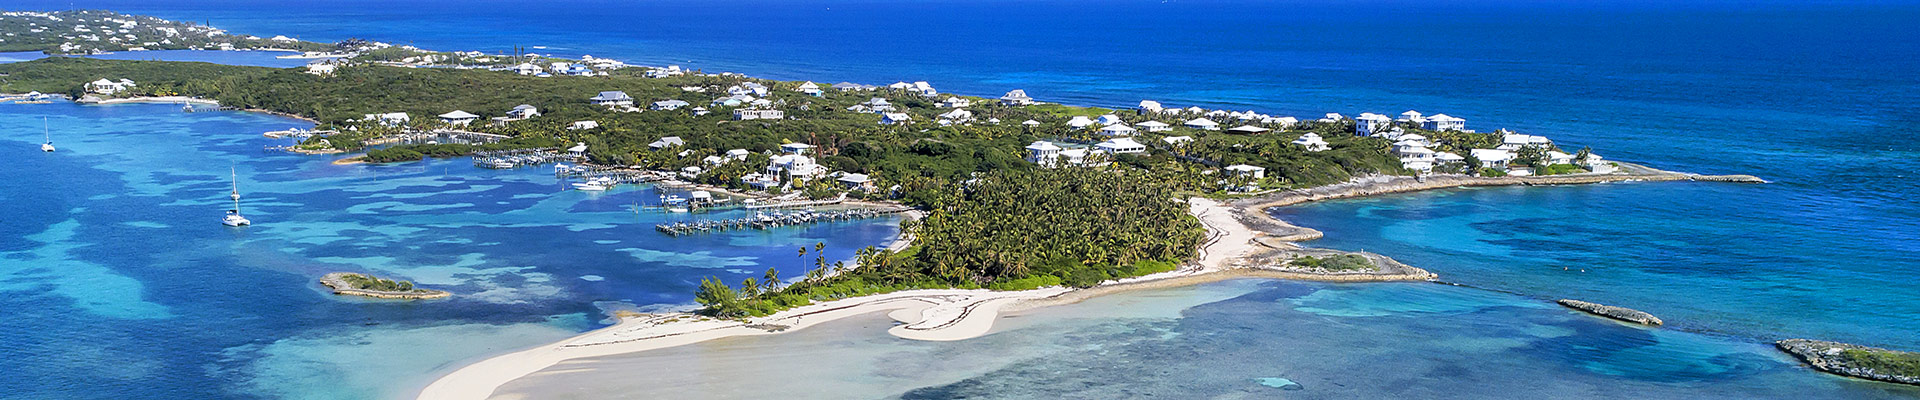 marsh harbour senior singles Prime investment opportunity with 3 options to maximize the return and minimize risk on offer is a re-development opportunity of a prime location in the growing township of marsh harbour, abaco island.